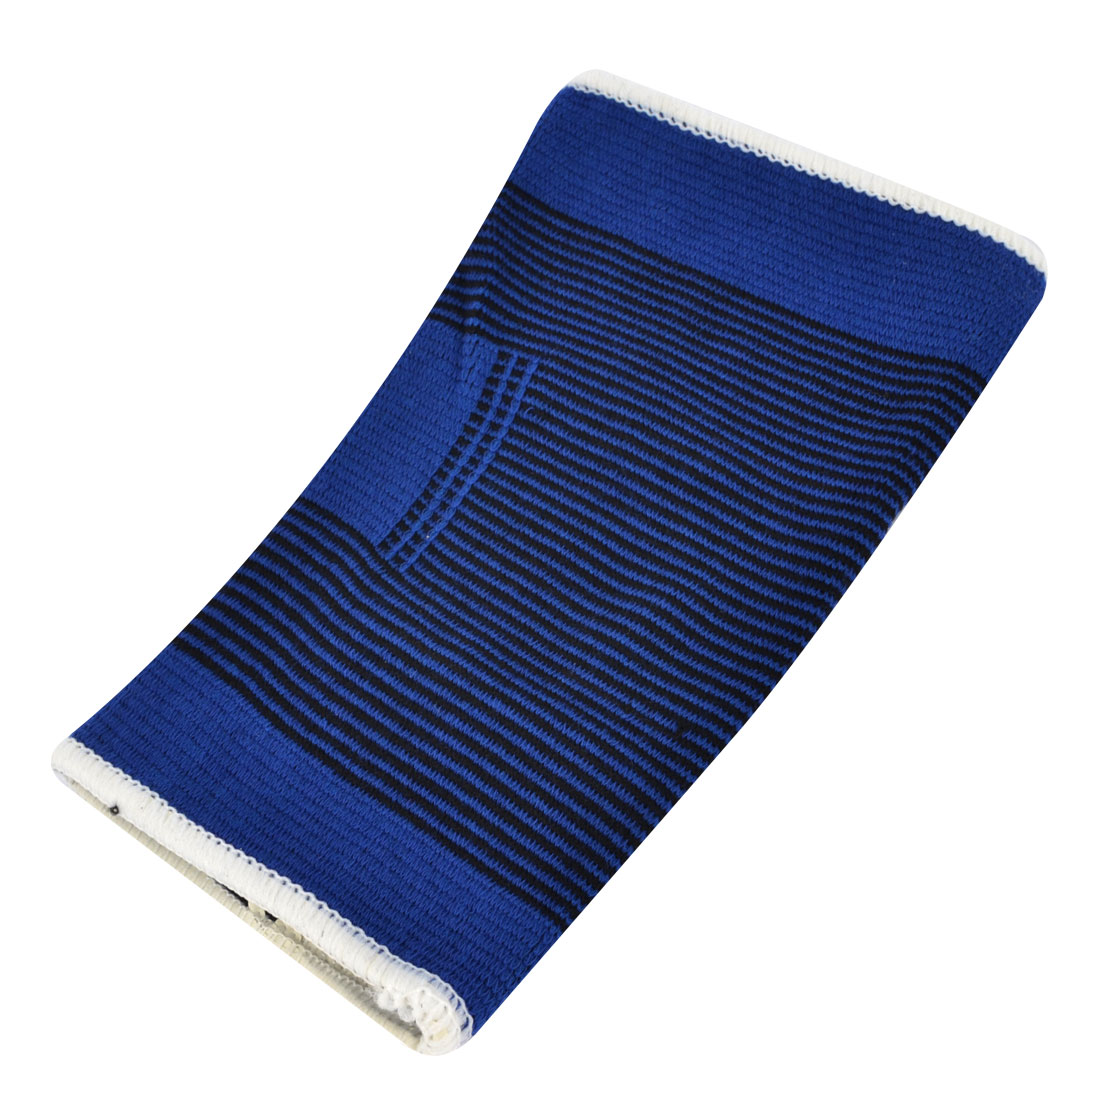 Outdoor Sport Pinstripe Pullover Wearing Elastic Knee Support Protector Sleeve Blue Black